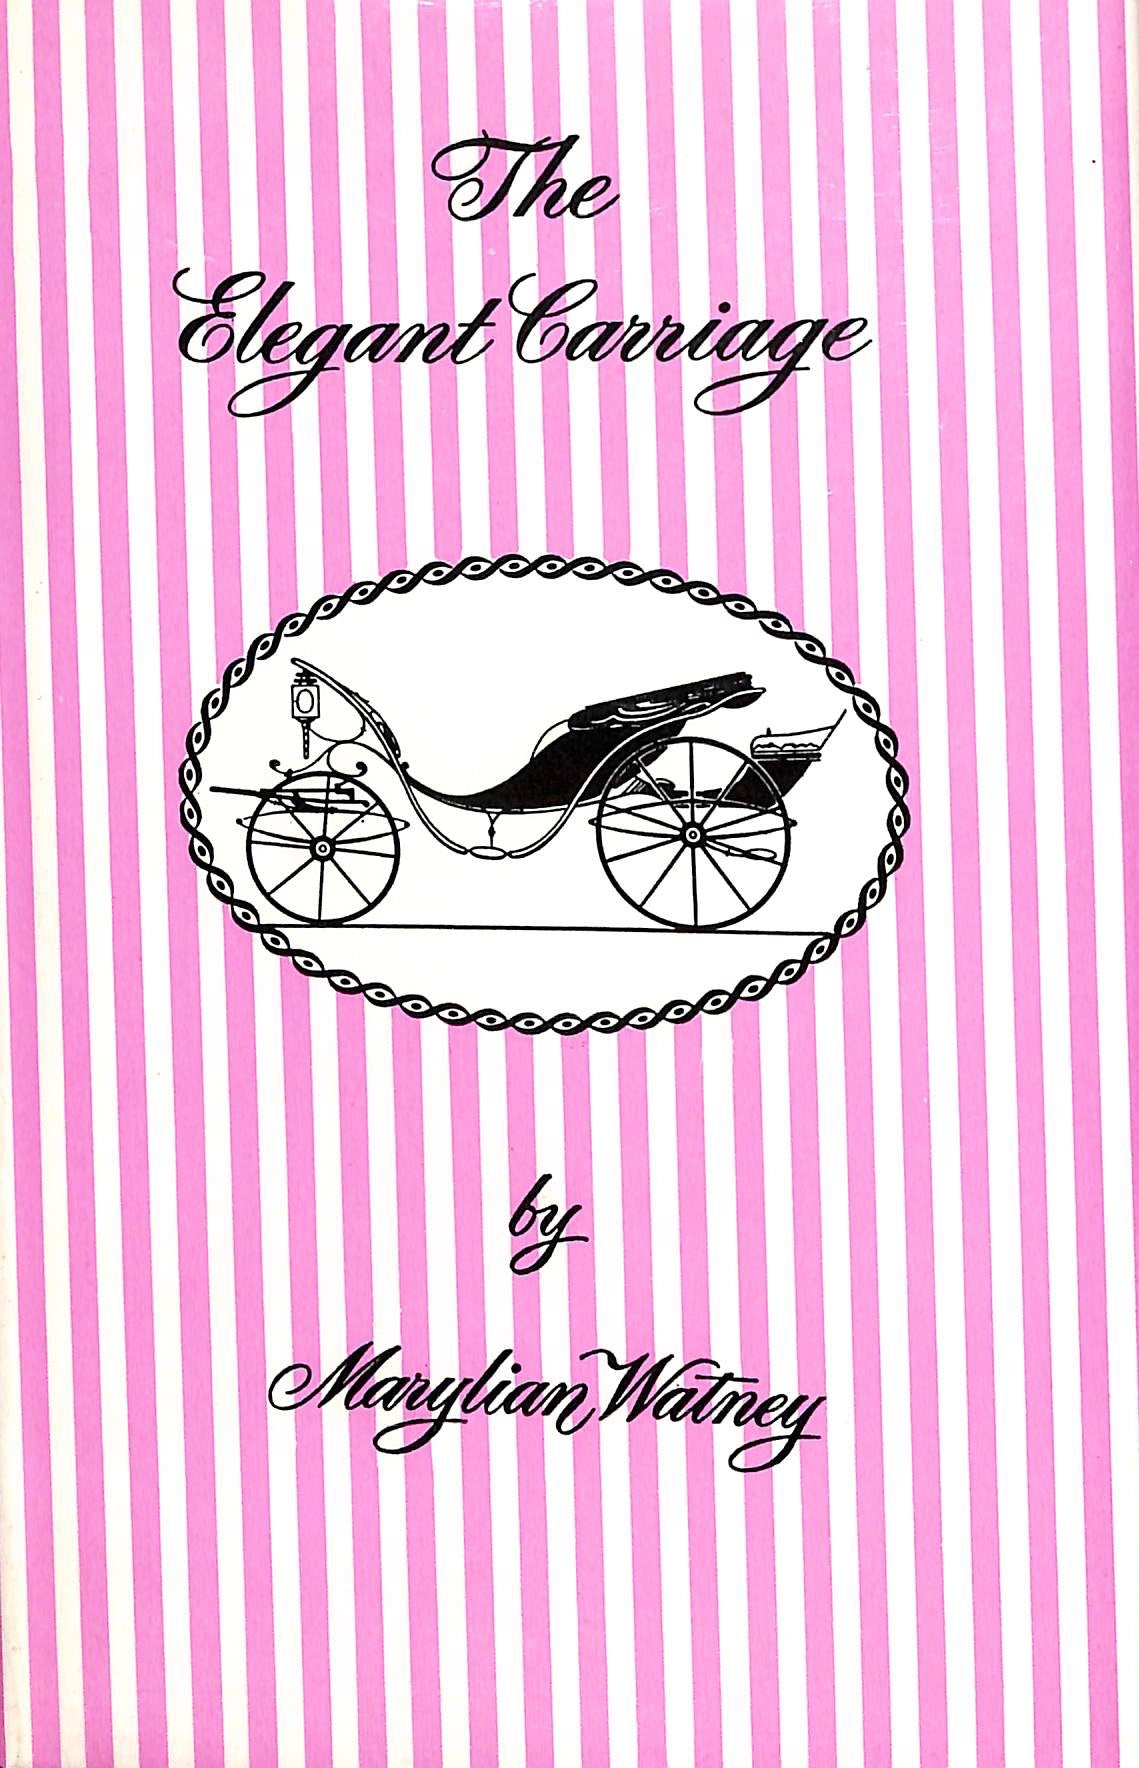 """The Elegant Carriage"" 1961 by Marylian Watney"